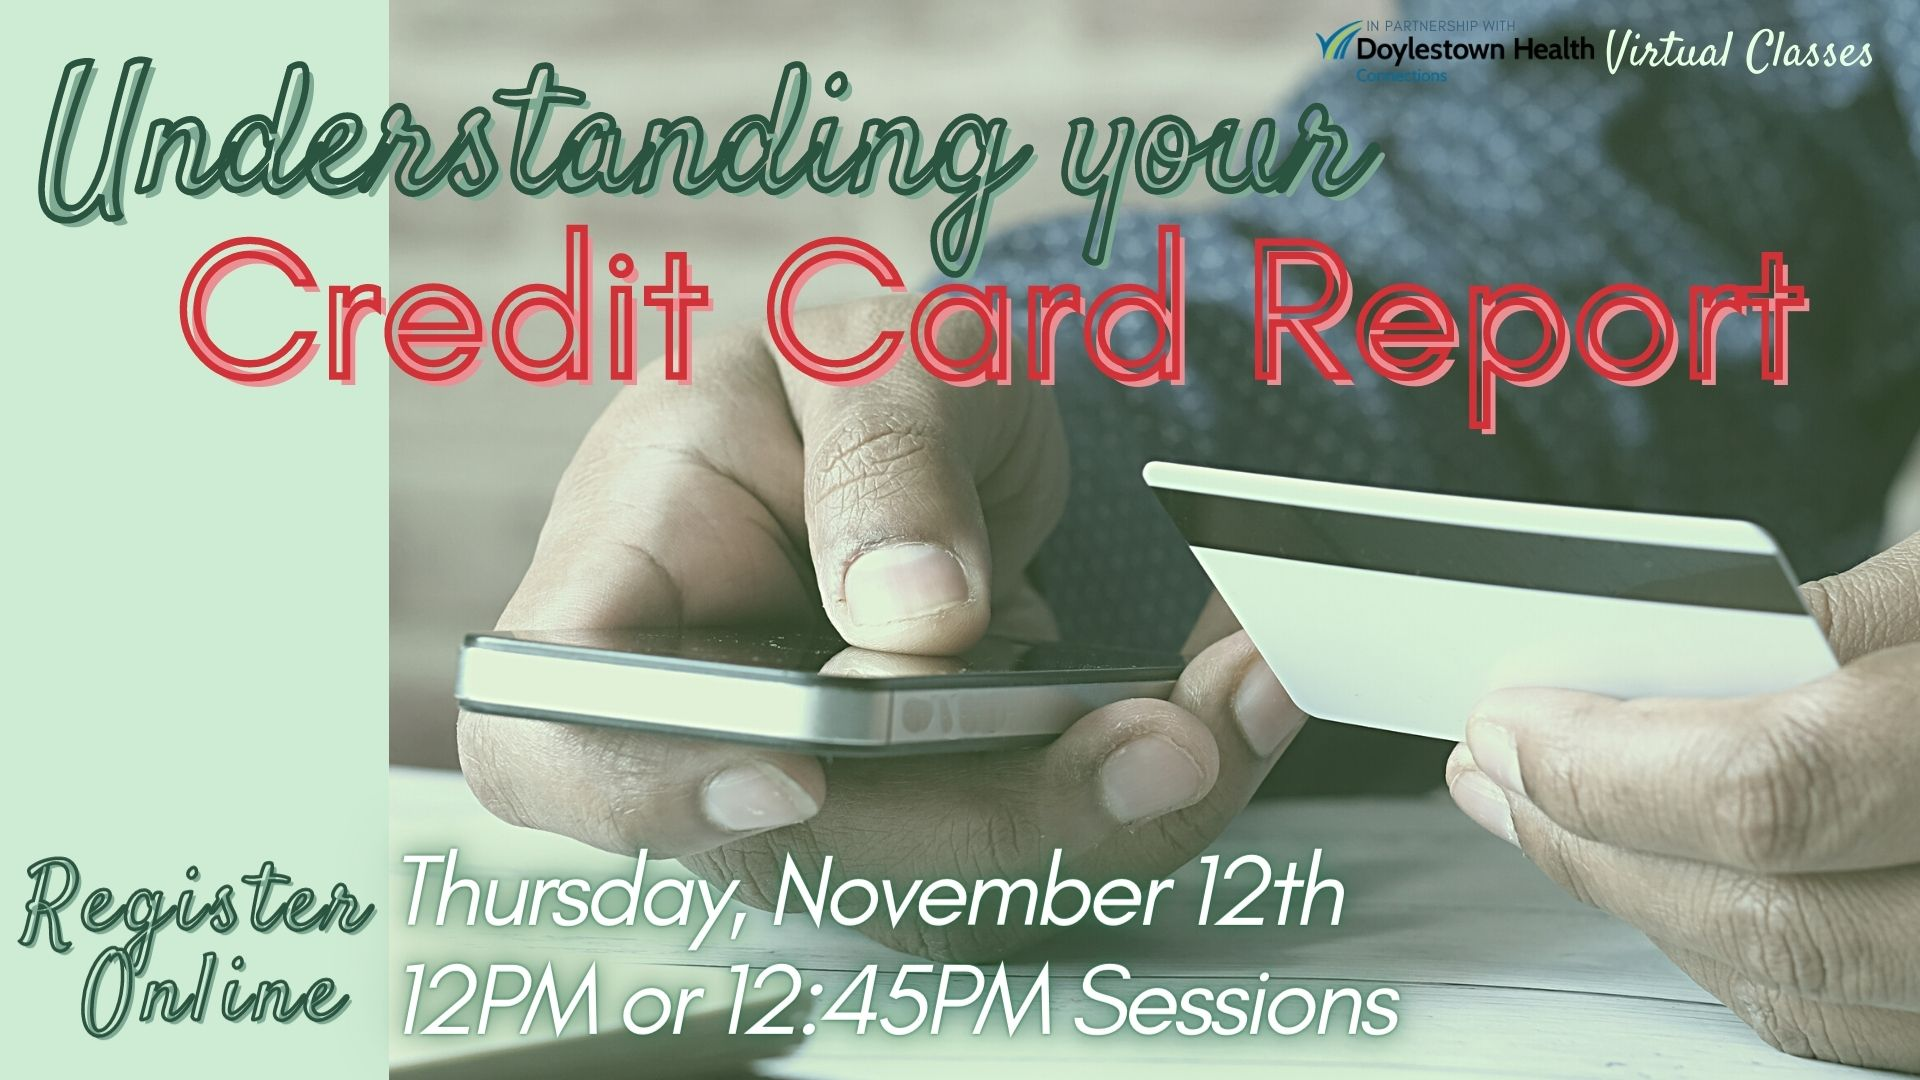 Understanding your Credit Card Report (Webinar) 12:00PM Session